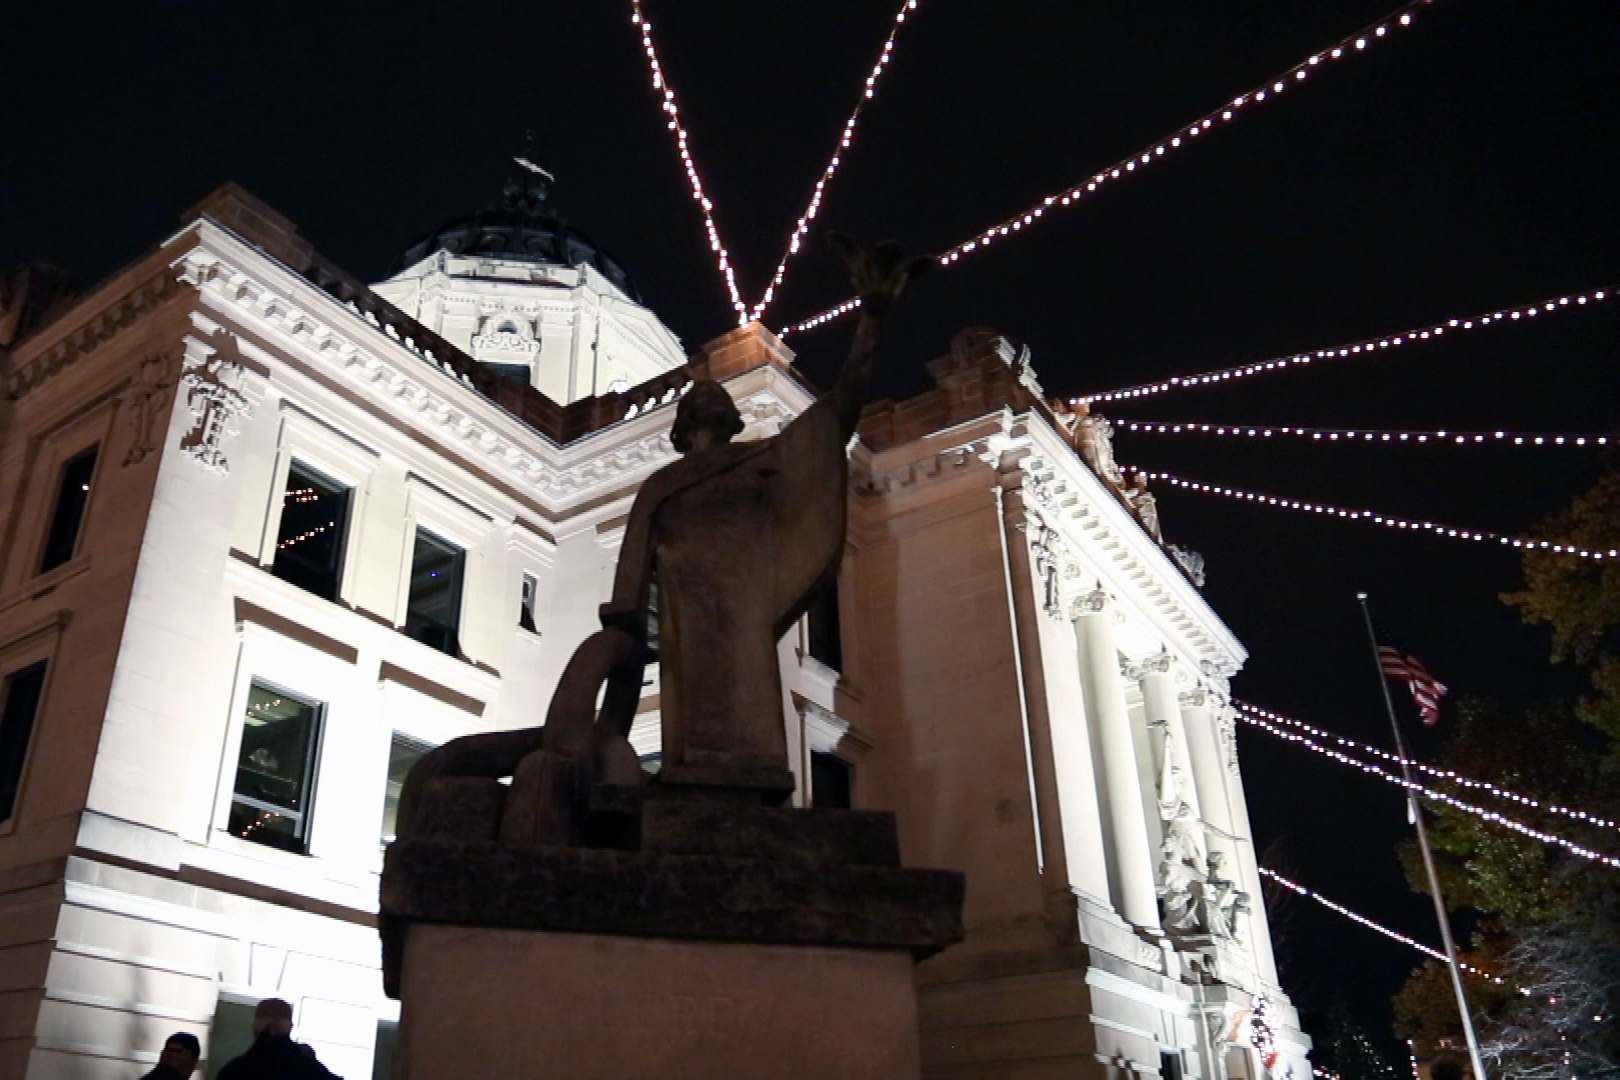 Bloomington's annual Canopy of Lights includes thousands of lights strung from the courthouse. Pictured here in 2016.